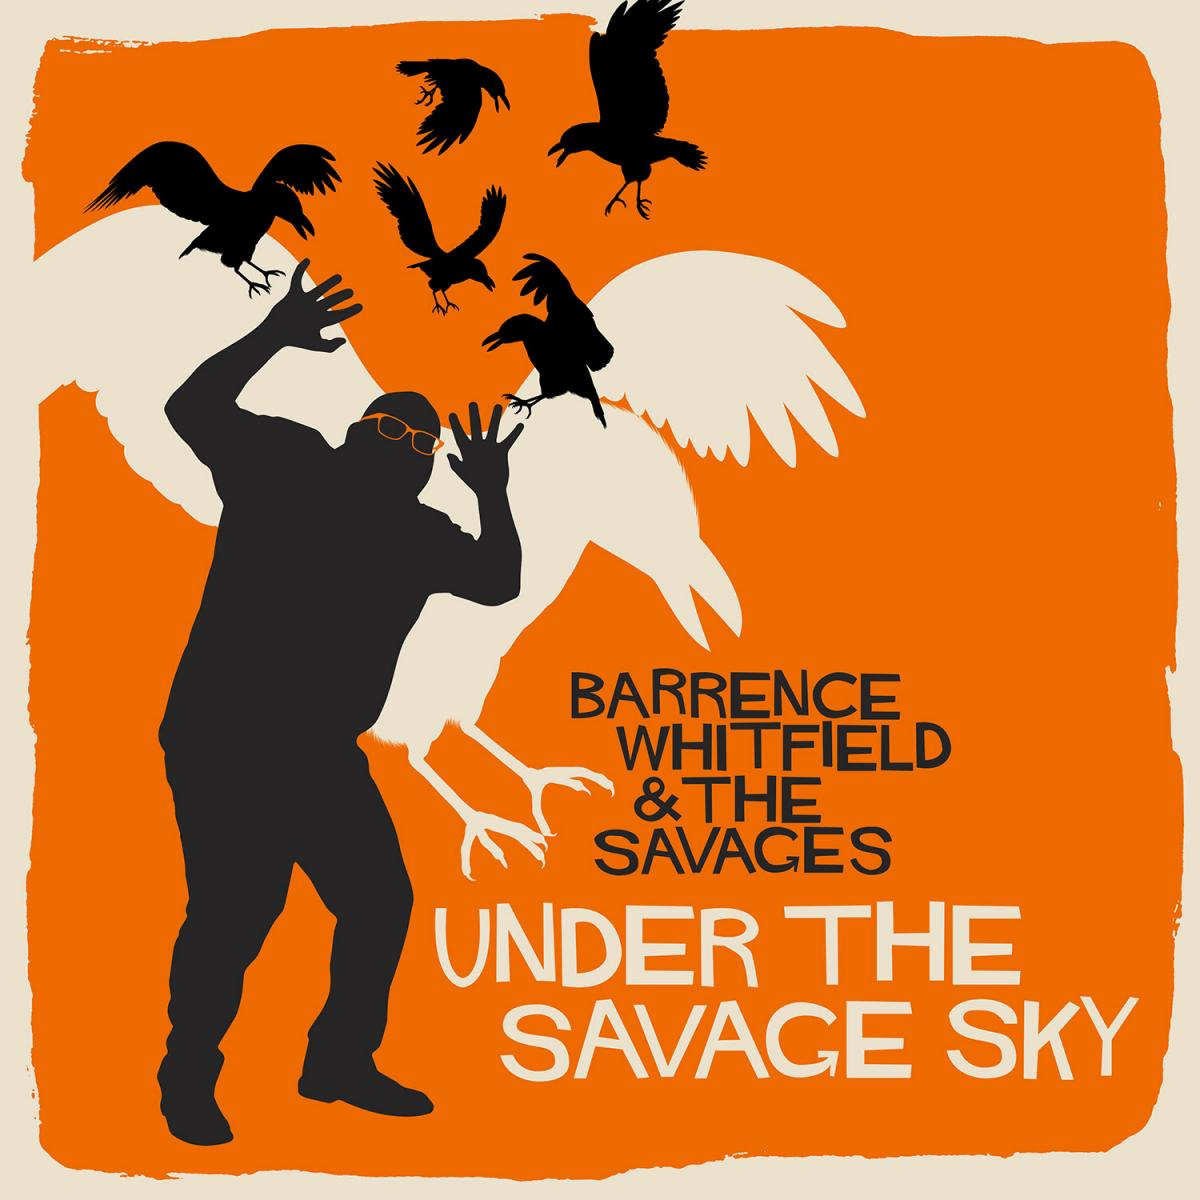 BS230 Barrence Whitfield and the Savages Under the Savage Sky